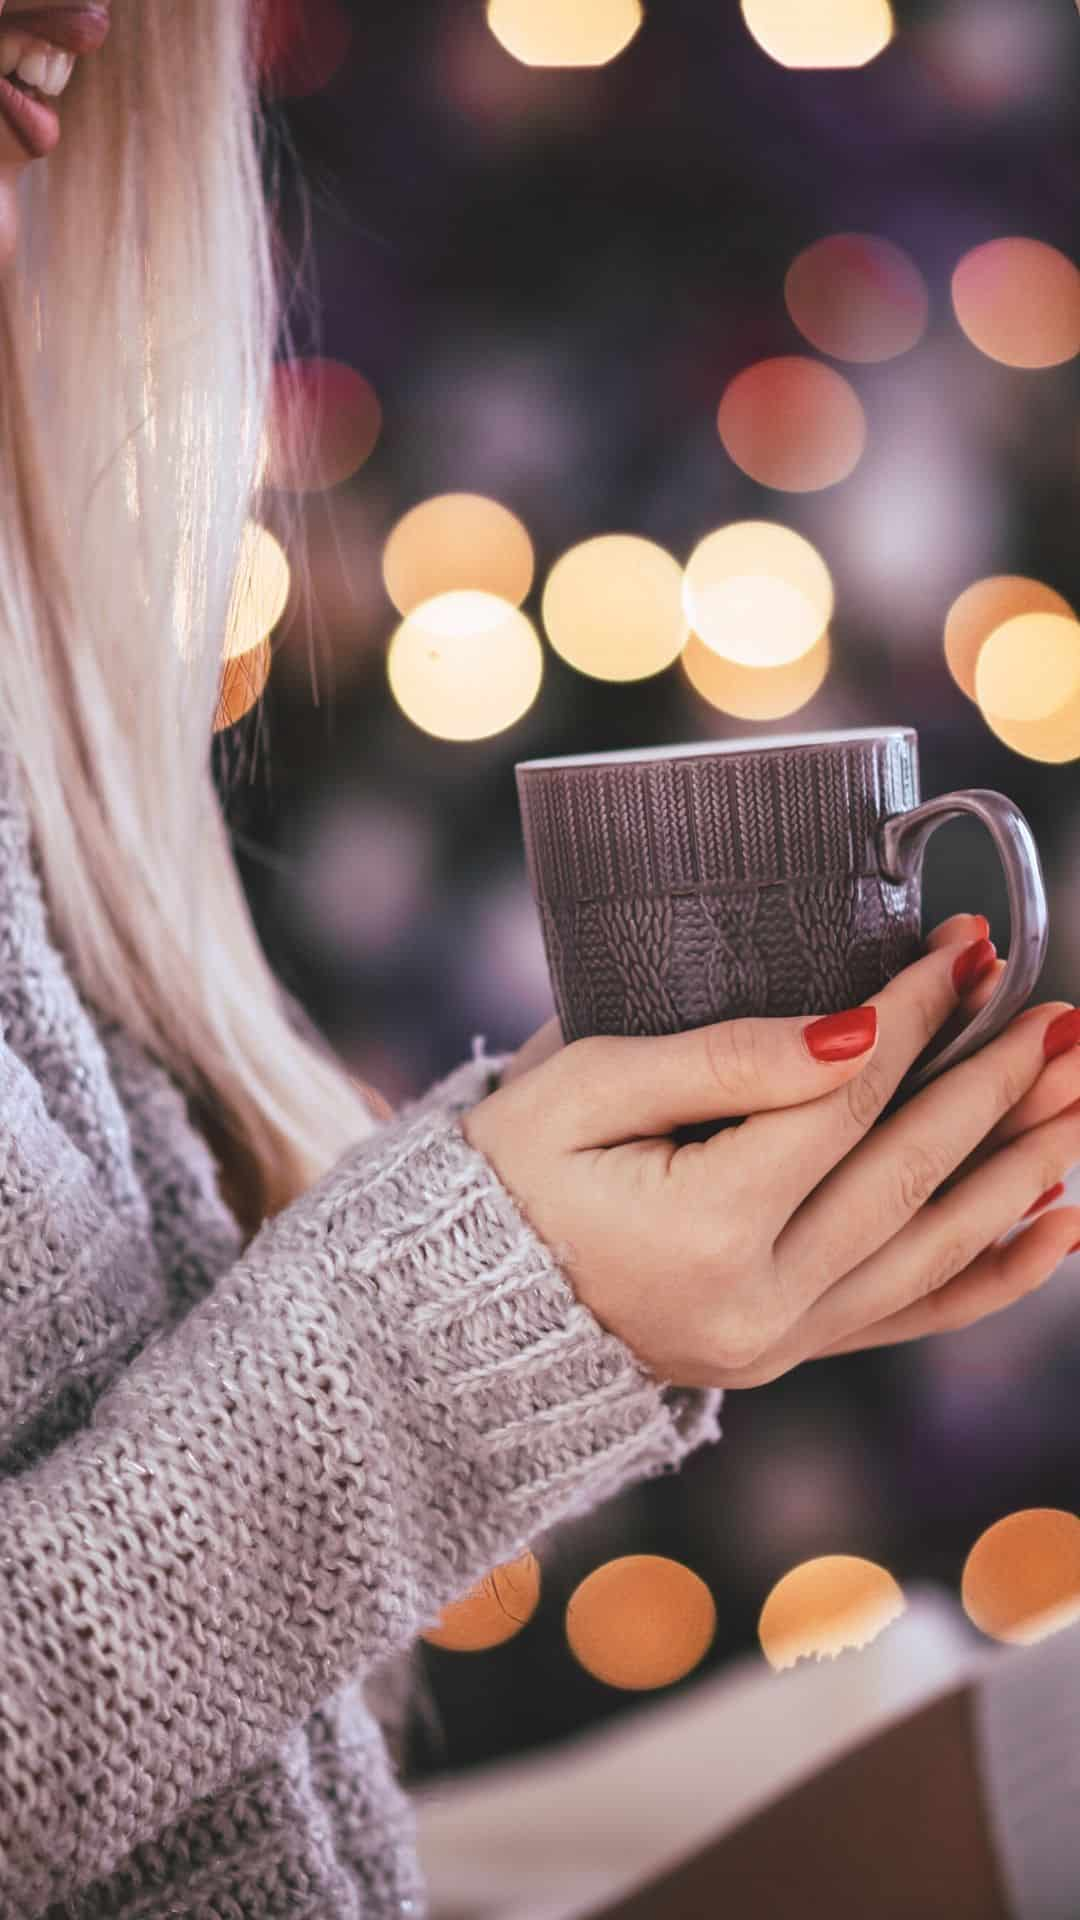 Cozy Christmas Backgrounds For iPhone Wallpaper Cozy Sweater & Mug